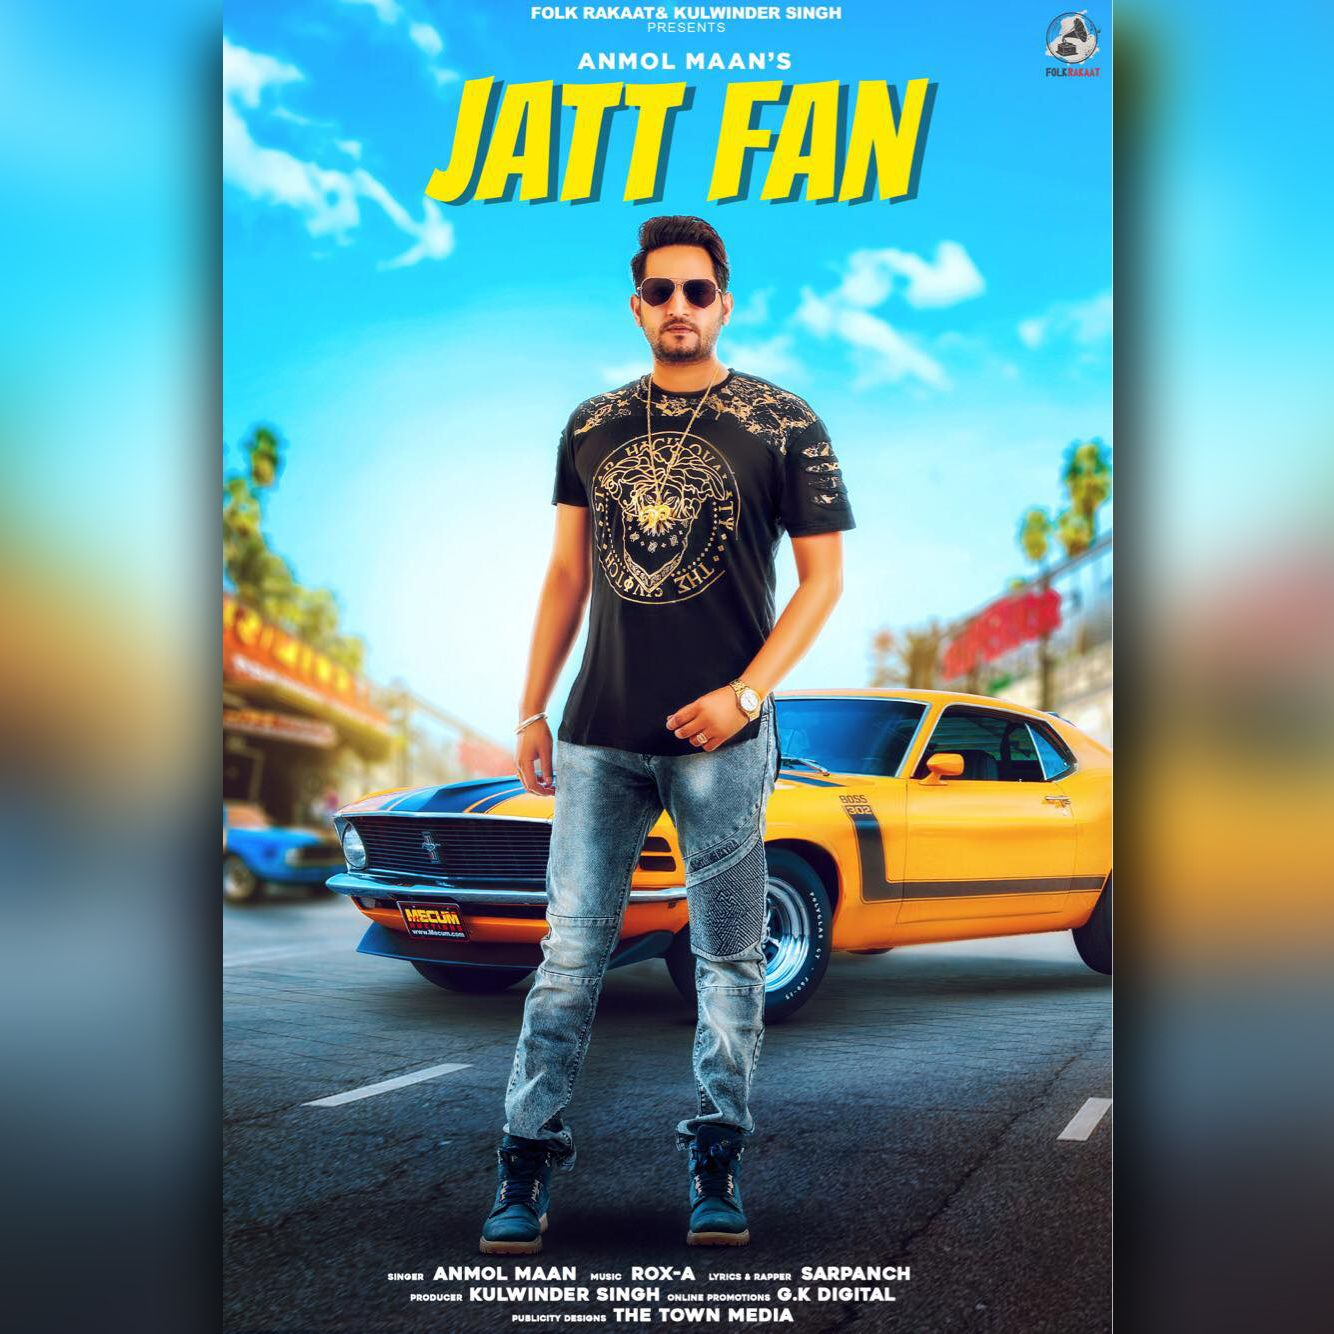 Jatt Fan by Anmol Maan download Mp3 Music download